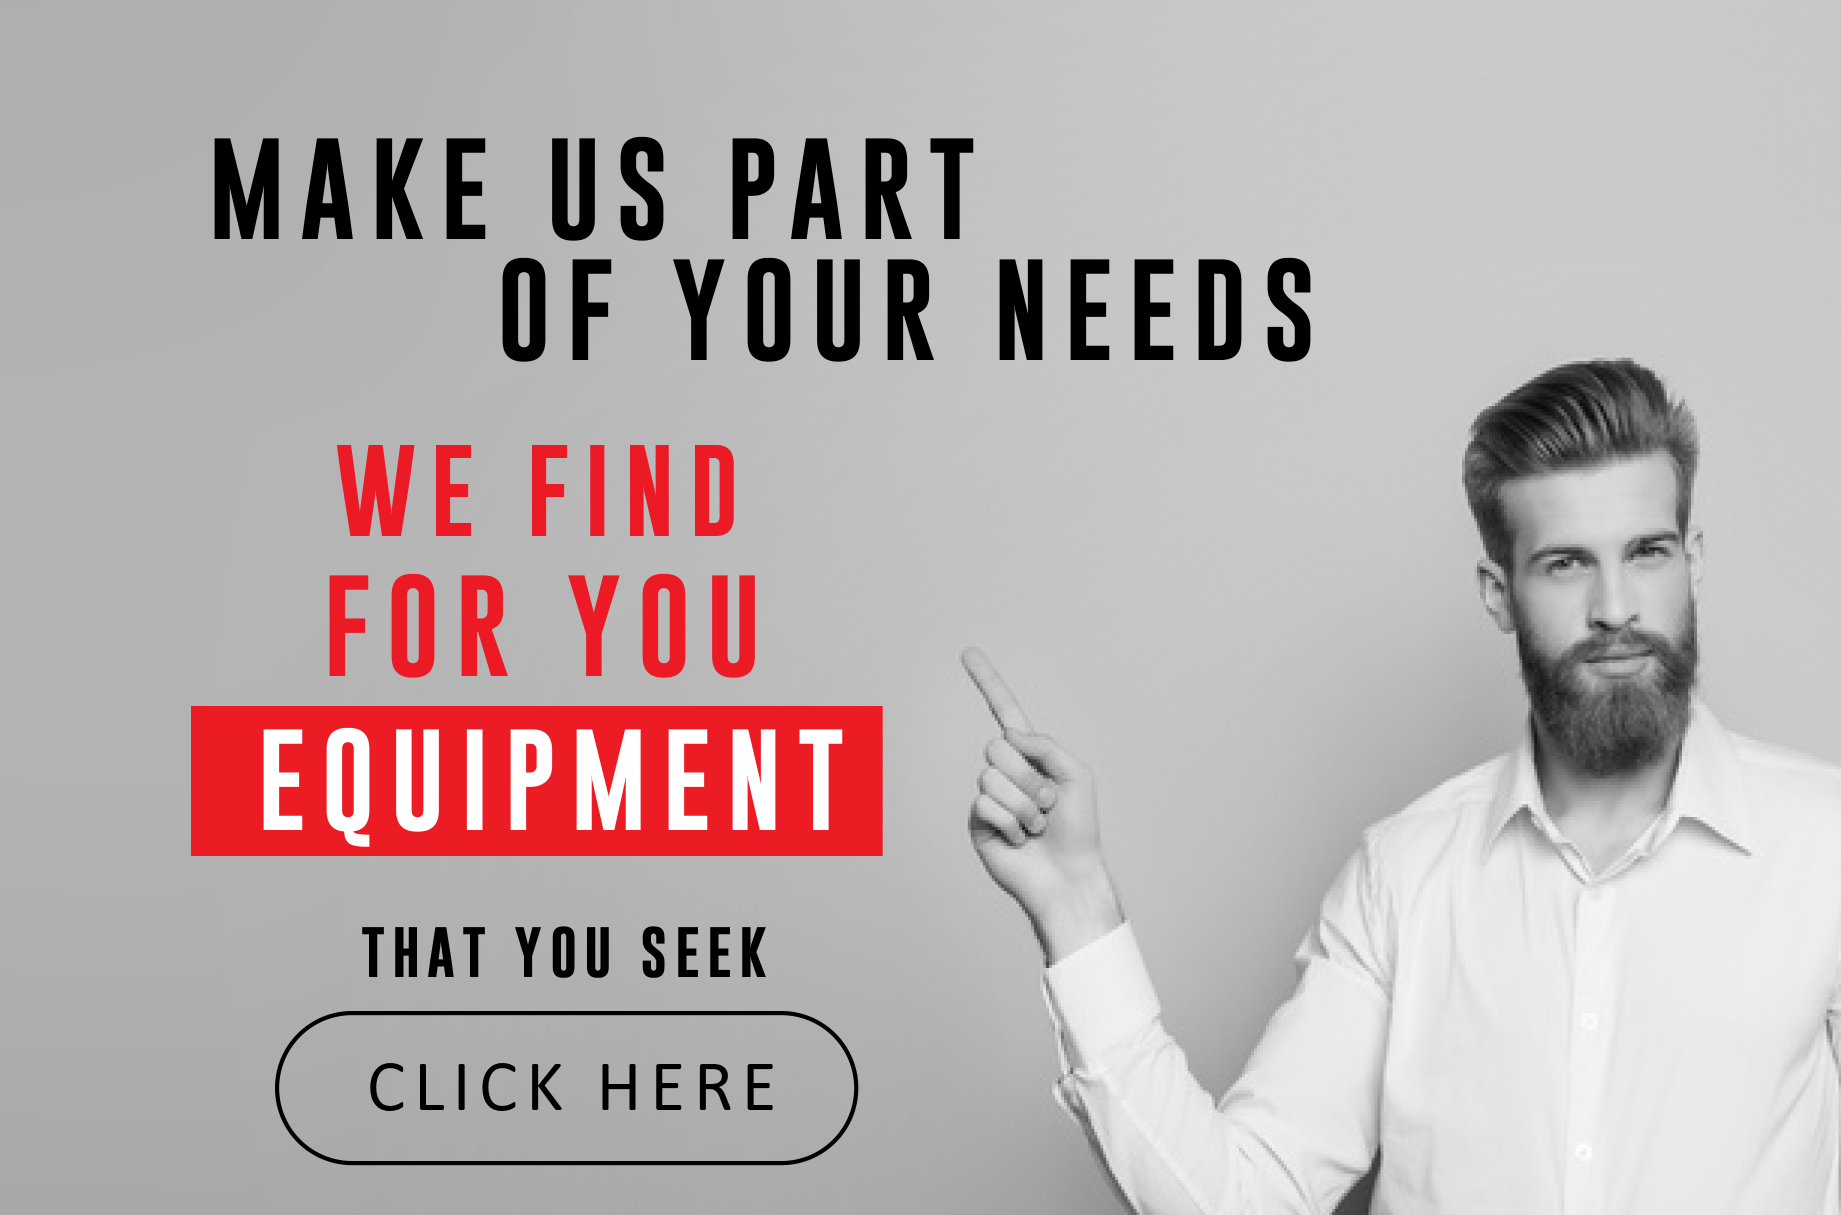 Make us part of your needs, we find for you equipment